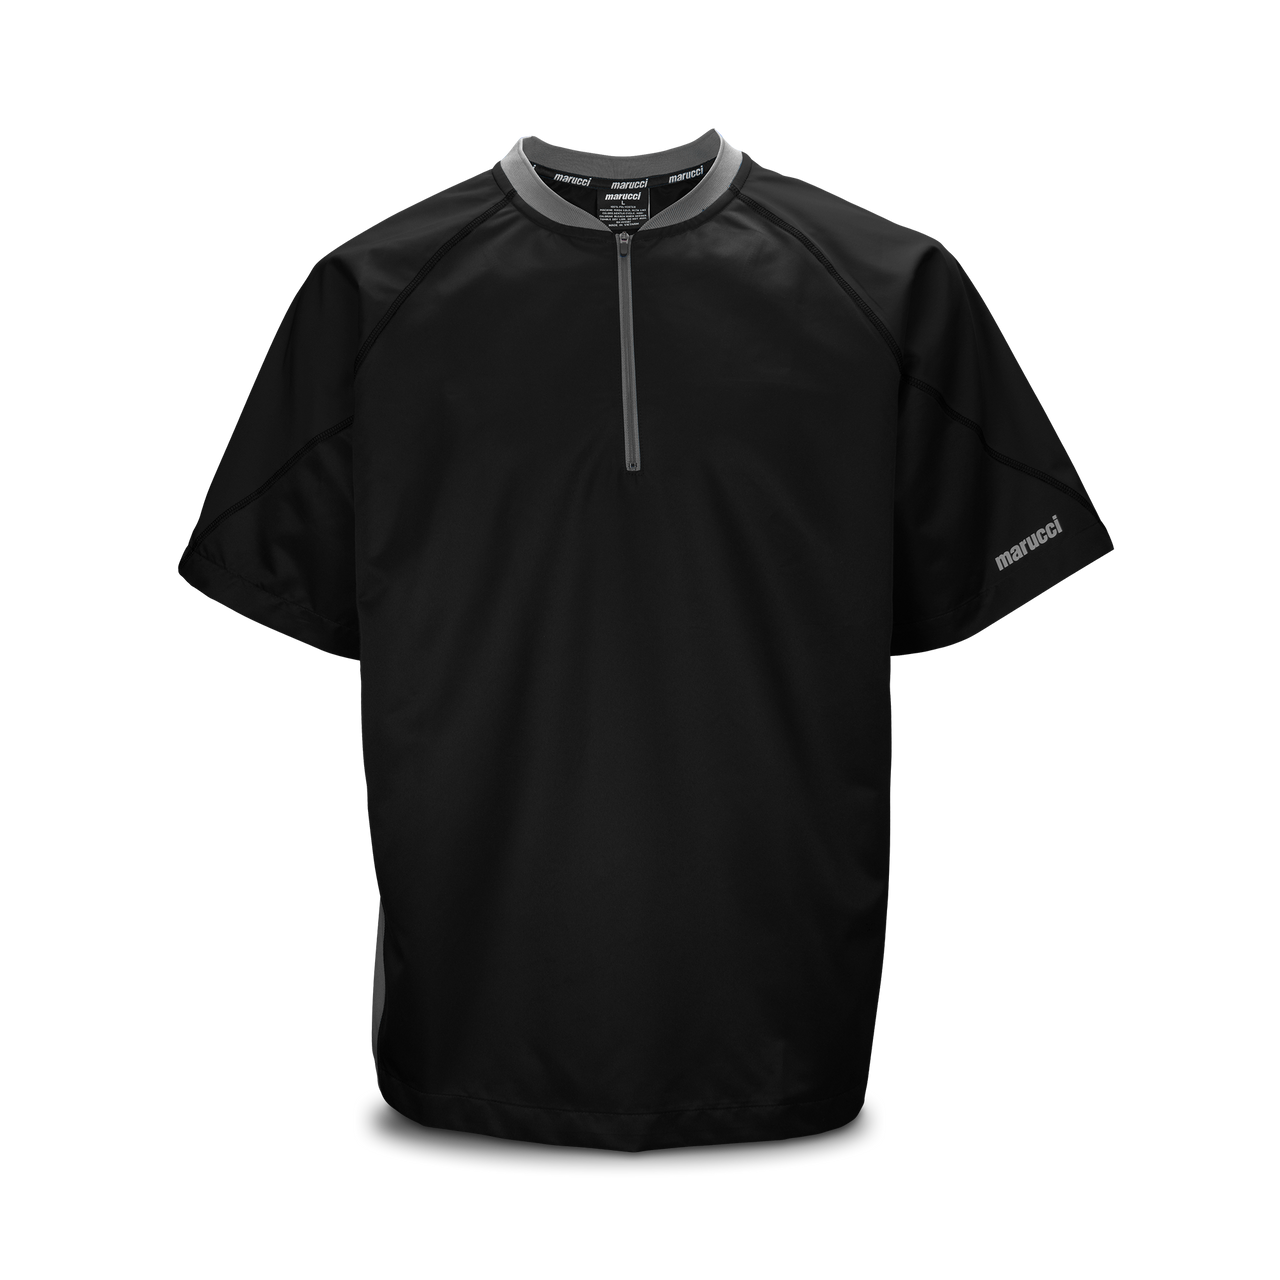 Marucci Youth Short Sleeve Batting Practice Jersey Black Small